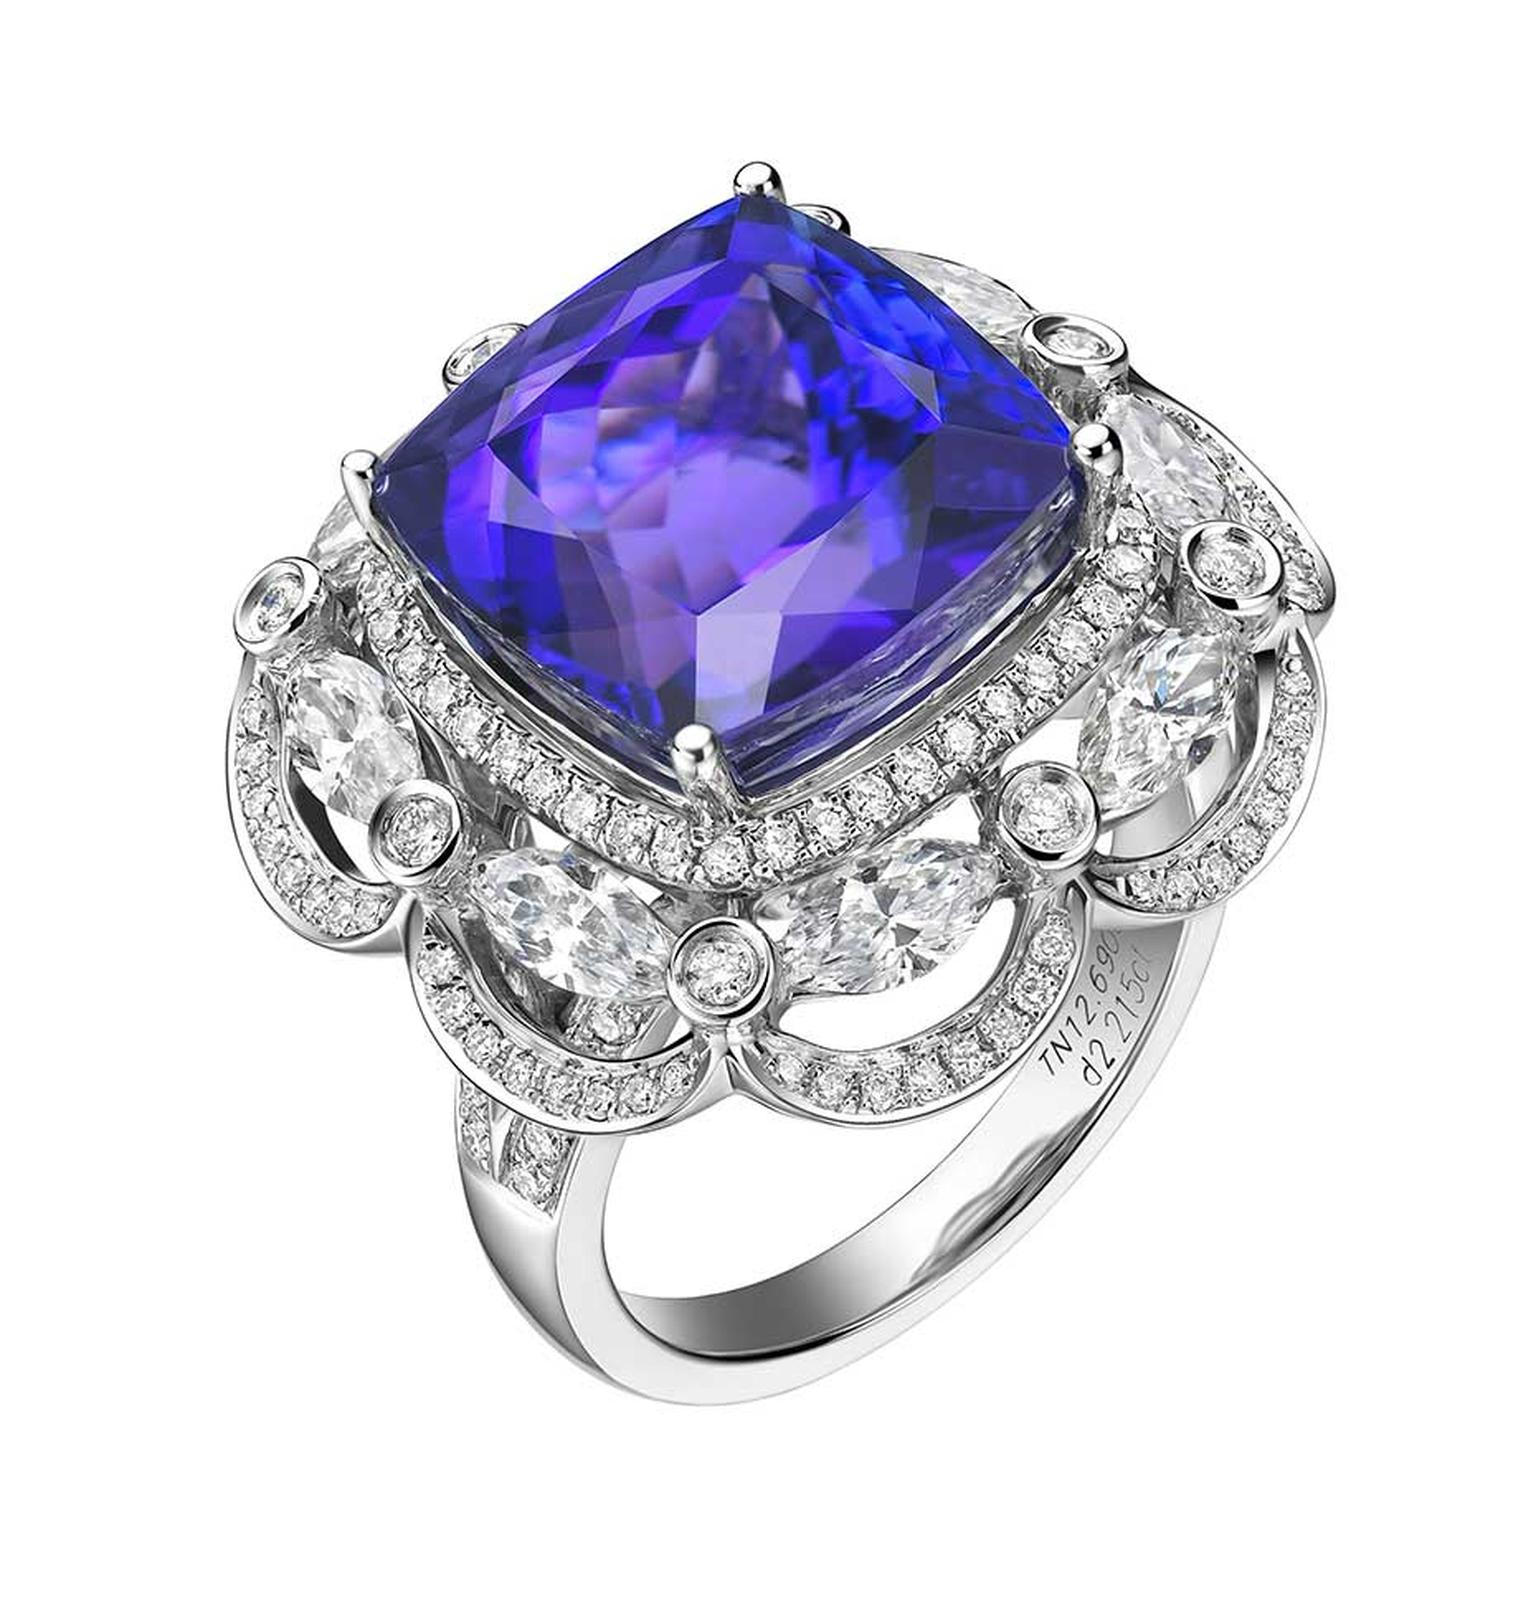 Fei Liu bespoke tanzanite ring in white gold with diamonds.